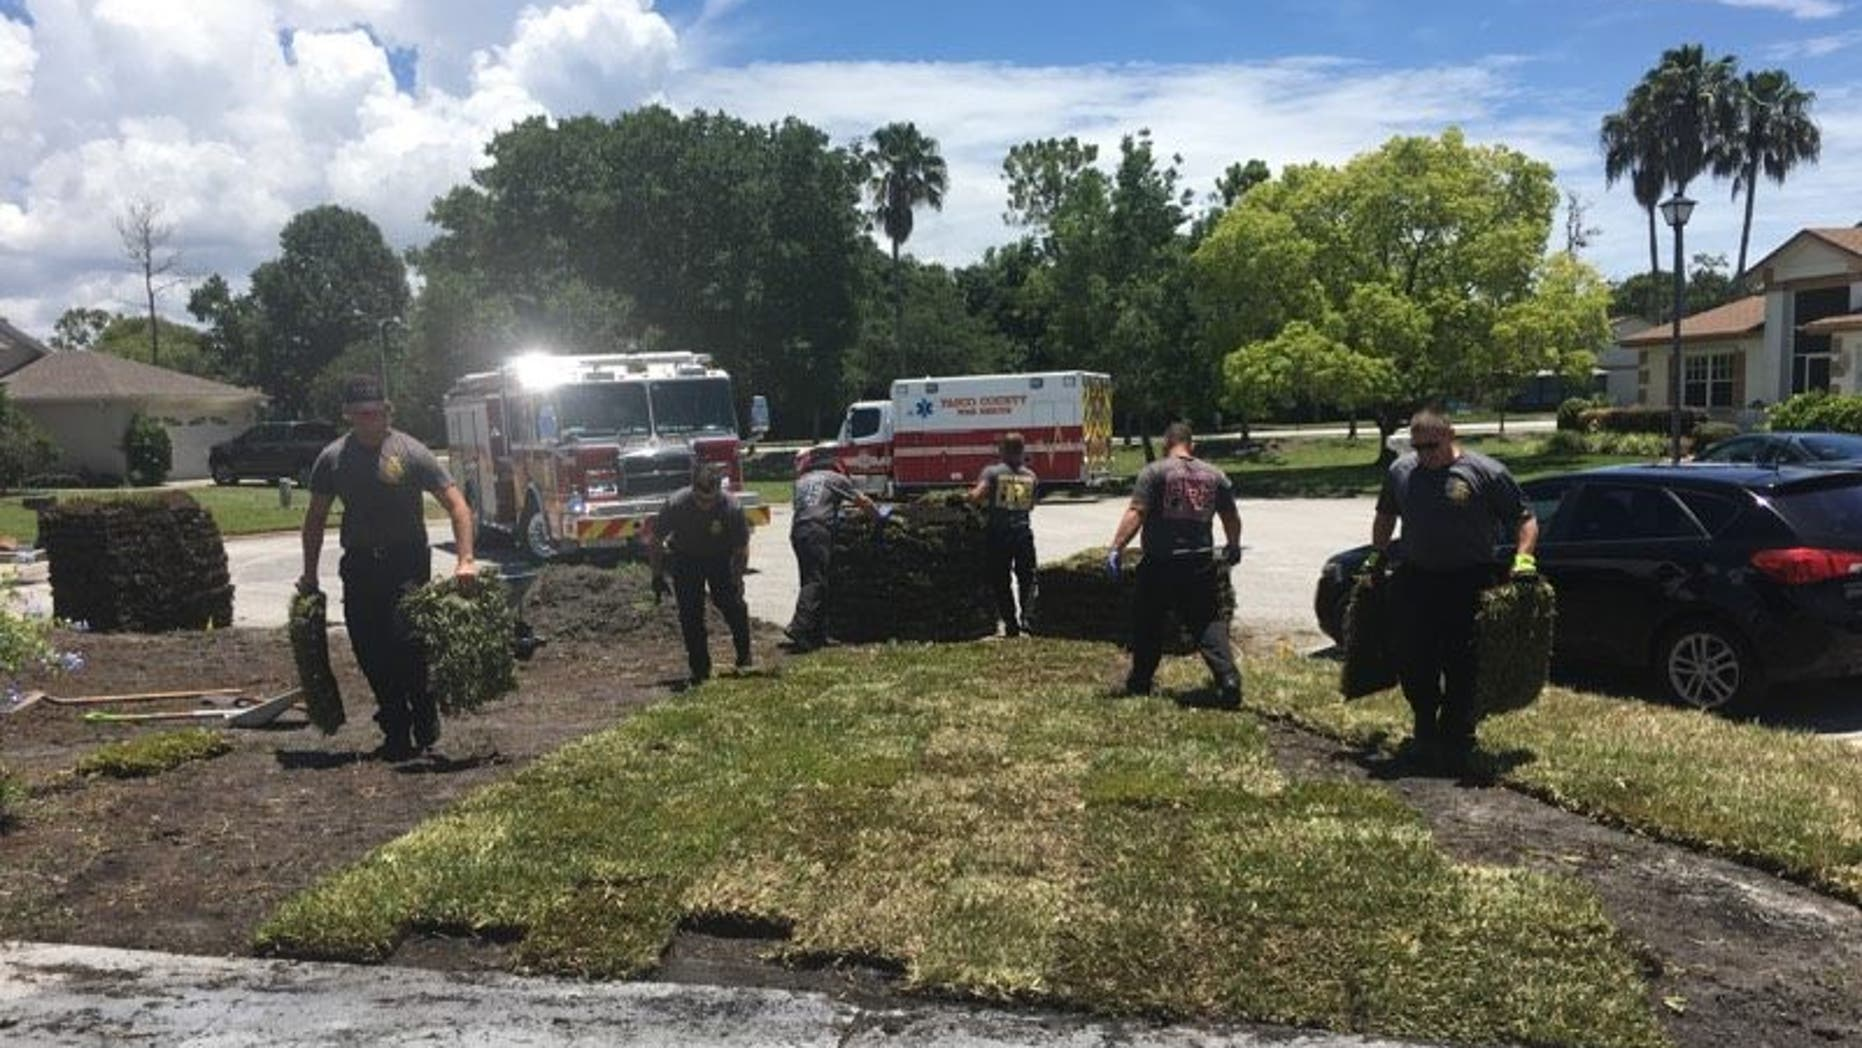 When Gene Work had a heart attack and couldn't finish his yard work, firefighters from the Pasco County Fire Rescue in Florida stepped in to help.